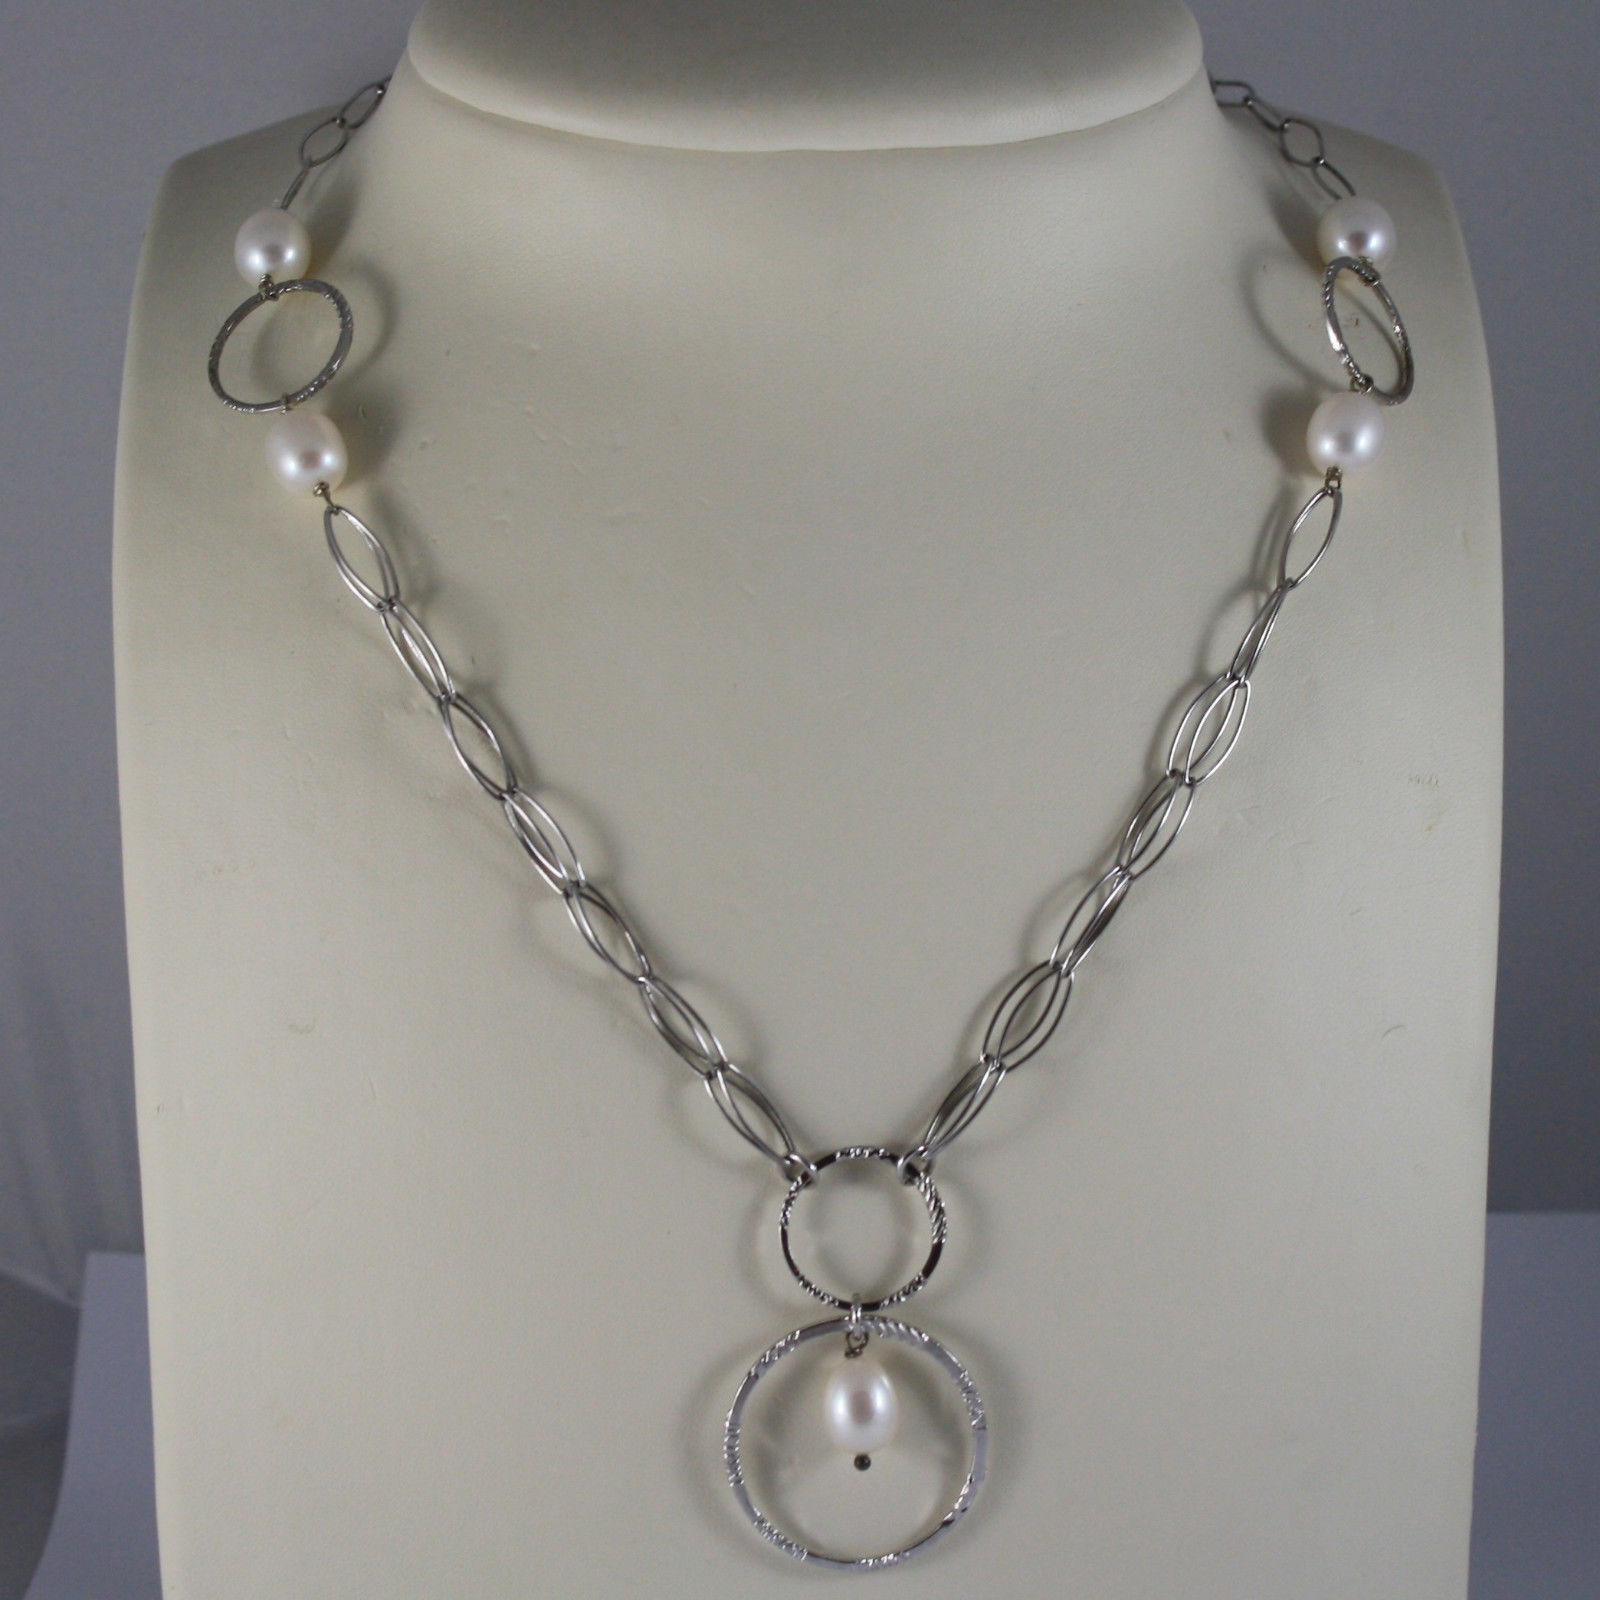 .925 RHODIUM SILVER NECKLACE WITH WHITE PEARLS AND WHEELS